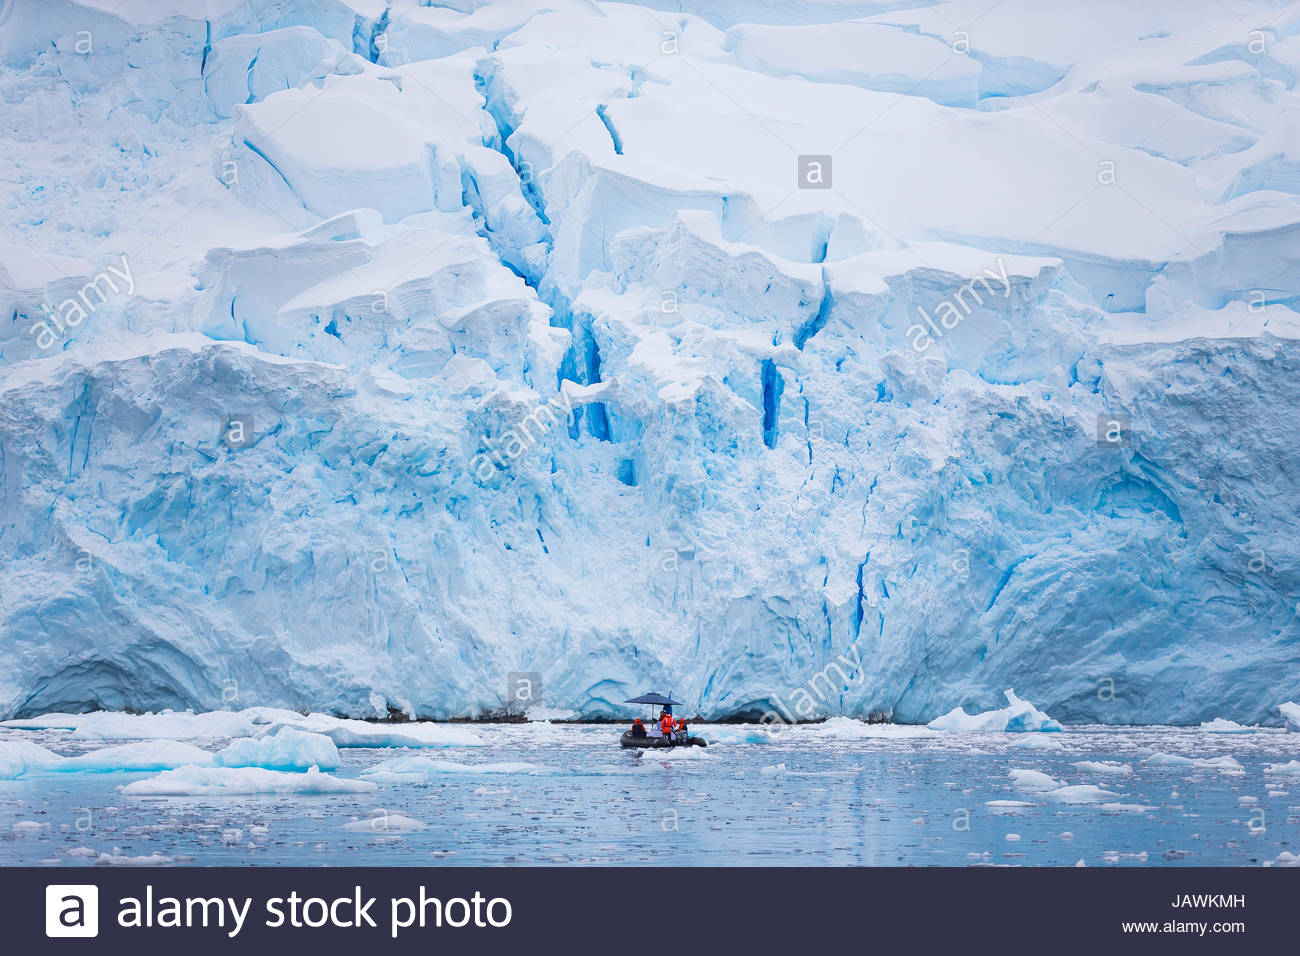 Exploring glaciers in Cierva Cove in Antarctica with small inflatable boats. - Stock Image